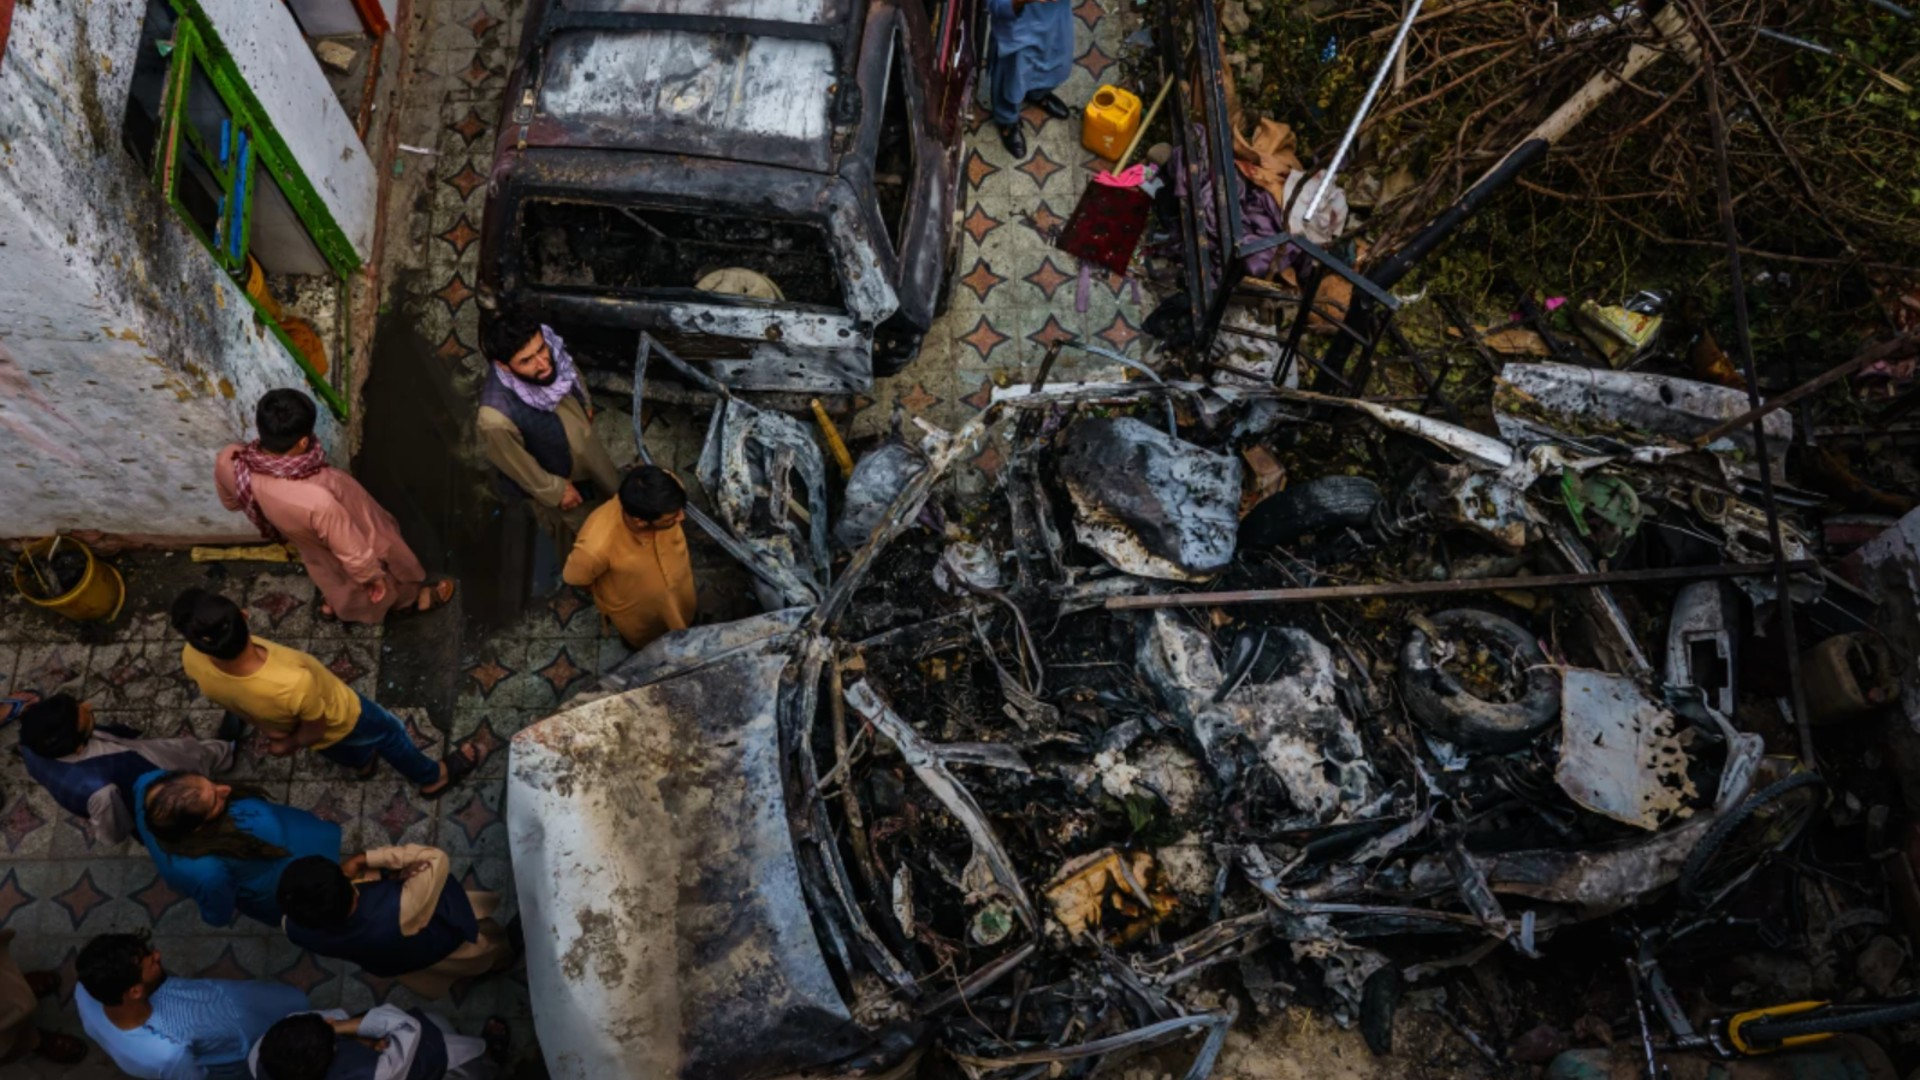 Relatives and neighbors of the Ahmadi family gather around a burned-out vehicle that the family says was hit by a U.S. drone strike, killing 10 people.(Marcus Yam / Los Angeles Times)